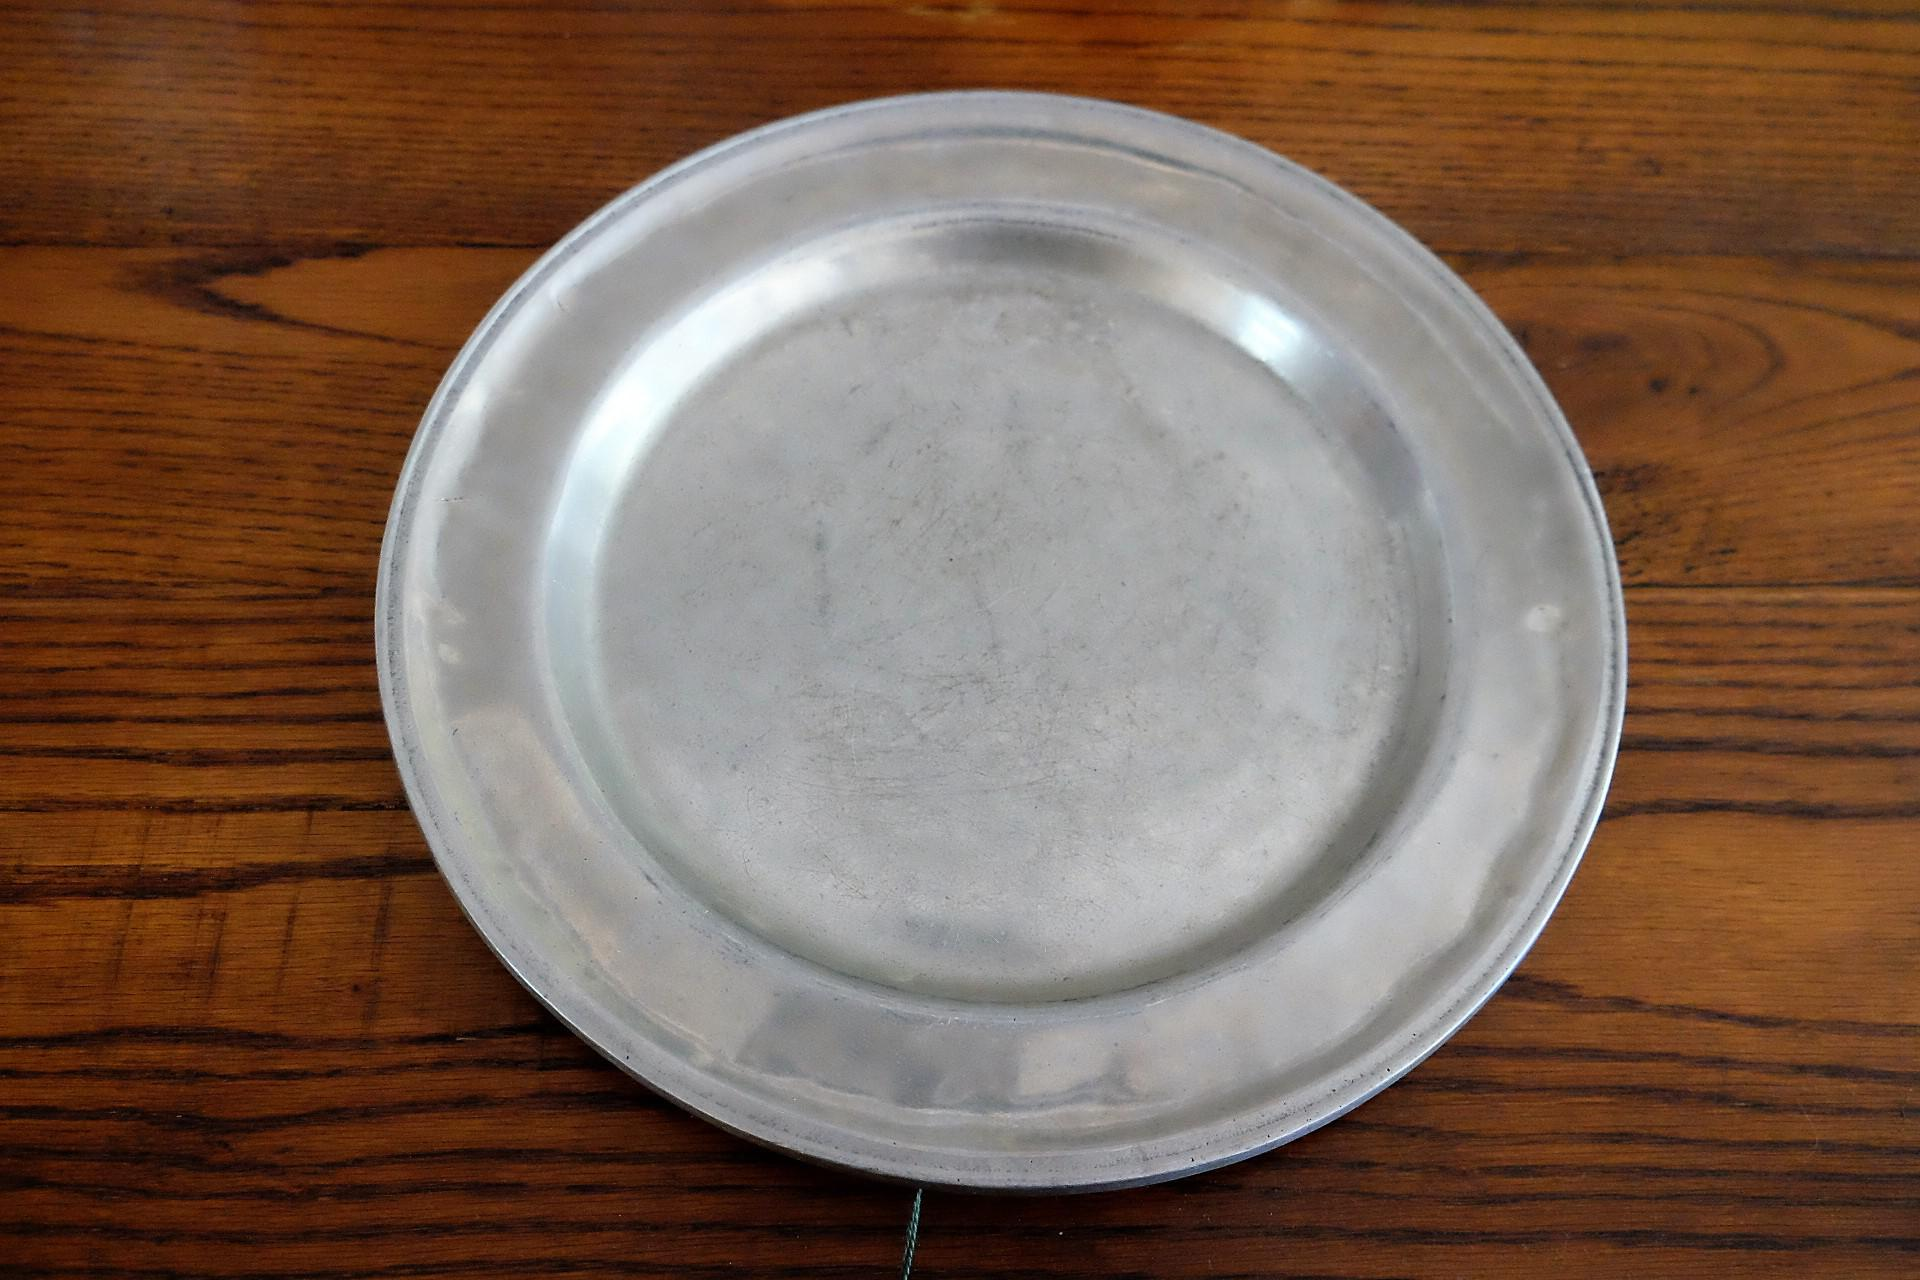 Wilton Armetale Pewter Dinner Plate - Image 2 of 5  sc 1 st  Chairish & Wilton Armetale Pewter Dinner Plate | Chairish